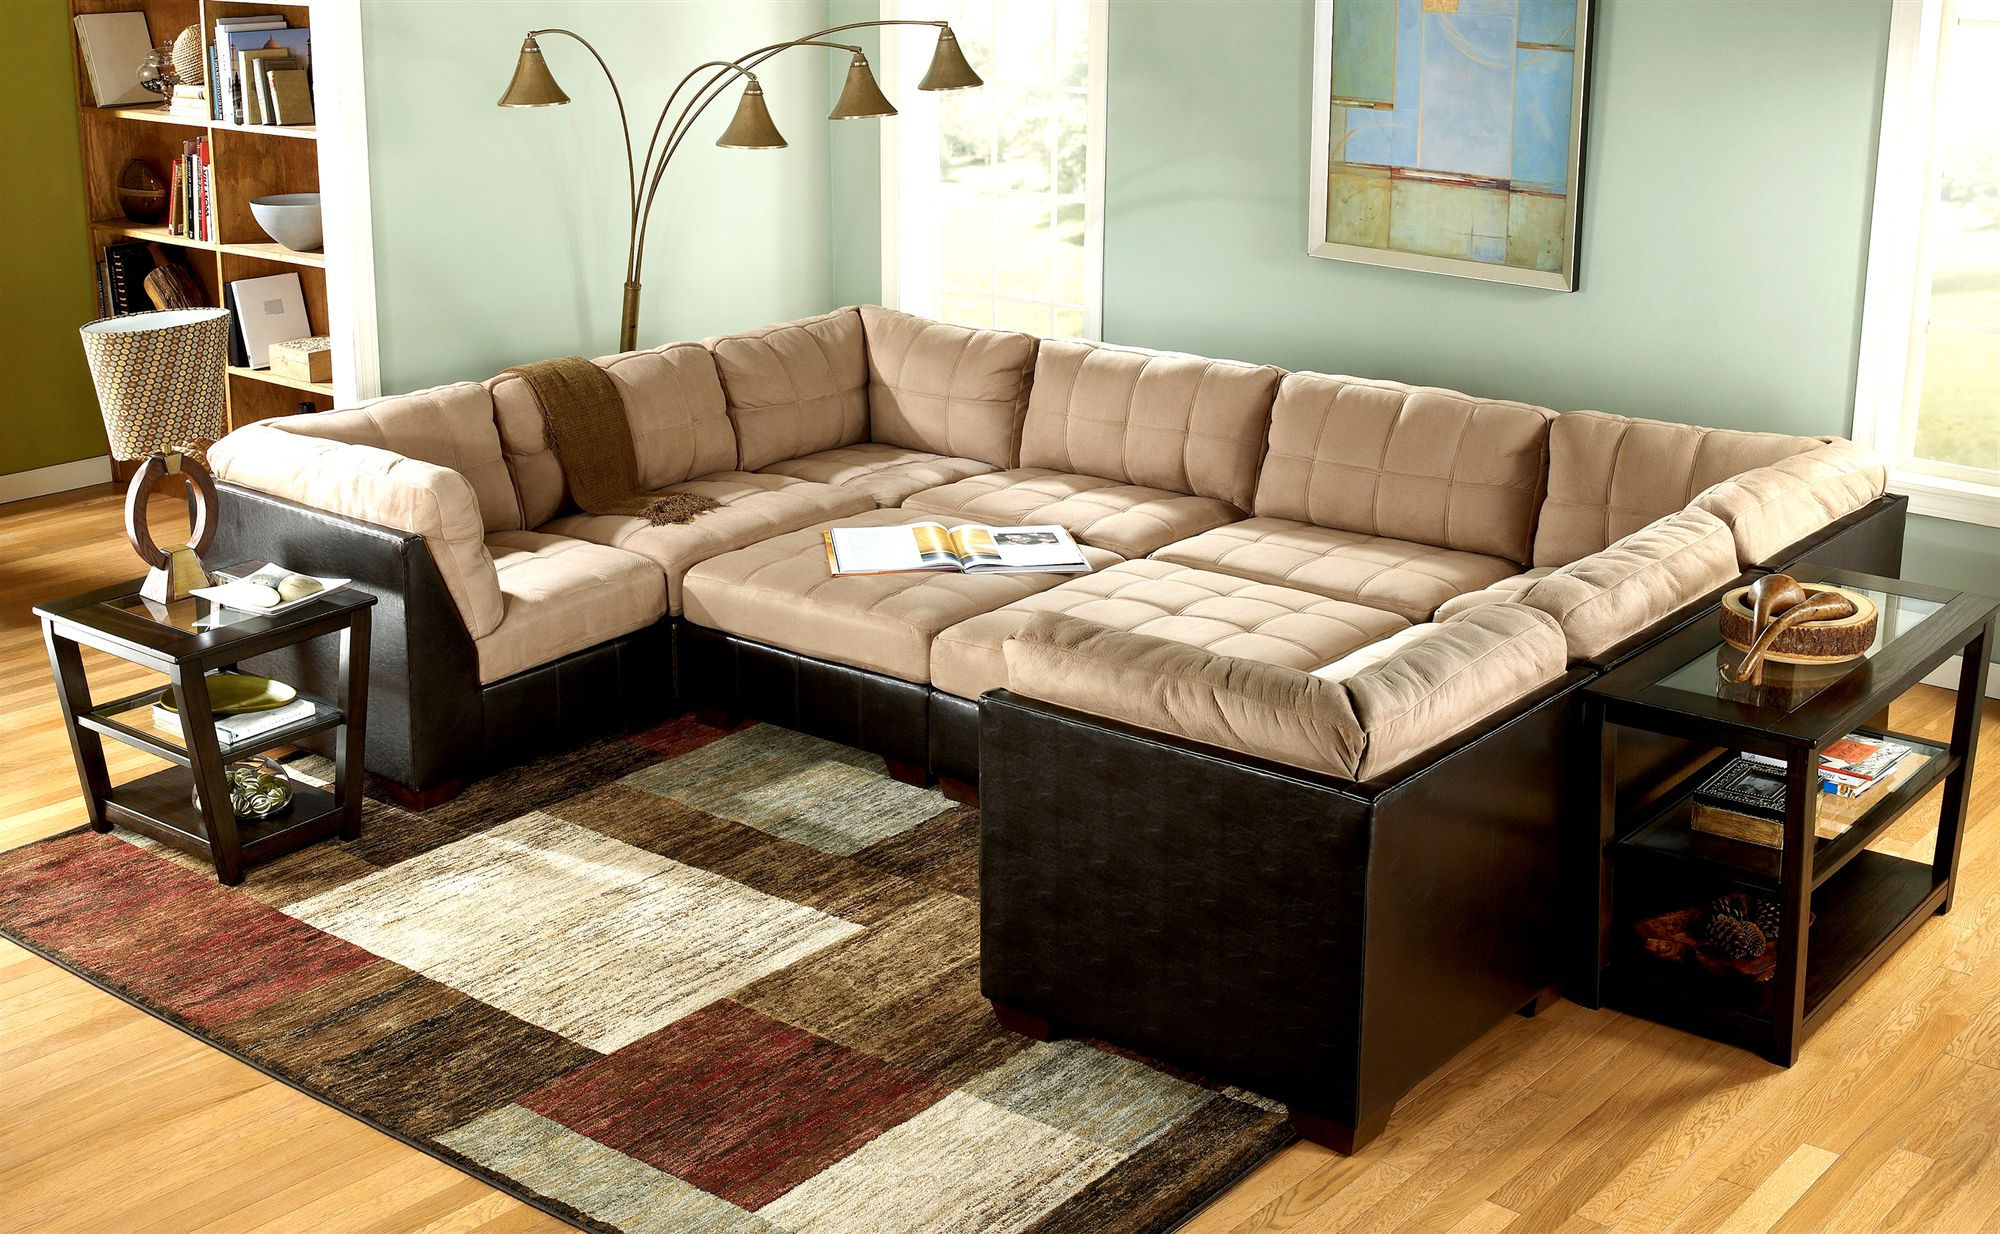 Living room ideas with sectionals sofa for small living for Living room furniture designs